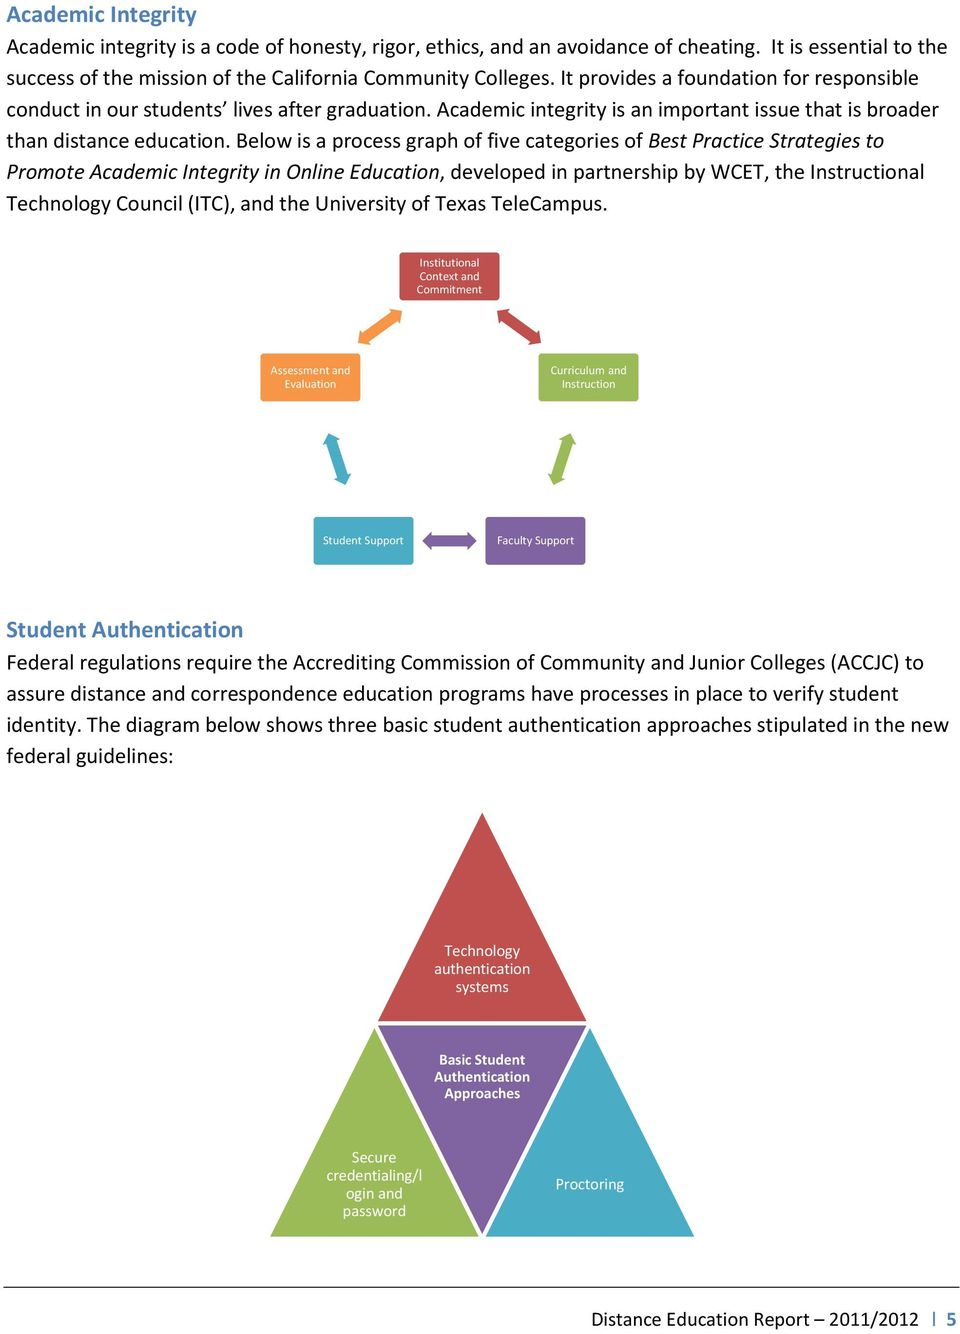 Below is a process graph of five categories of Best Practice Strategies to Promote Academic Integrity in Online Education, developed in partnership by WCET, the Instructional Technology Council